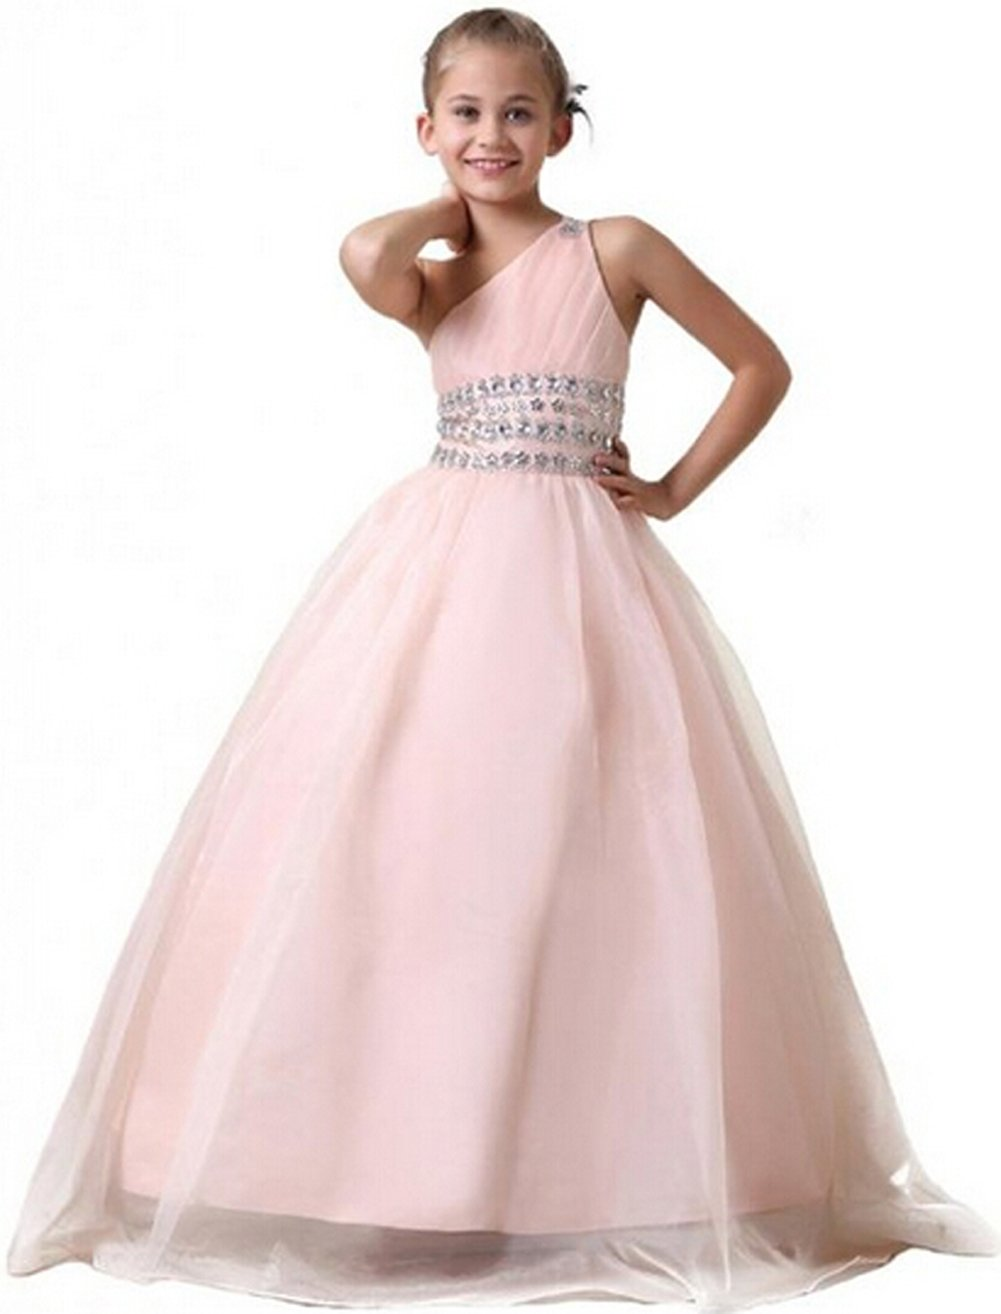 BFB Big Girls' Ball Gown Flower Appliques Wedding Pageant Dresses (8, Light Pink)